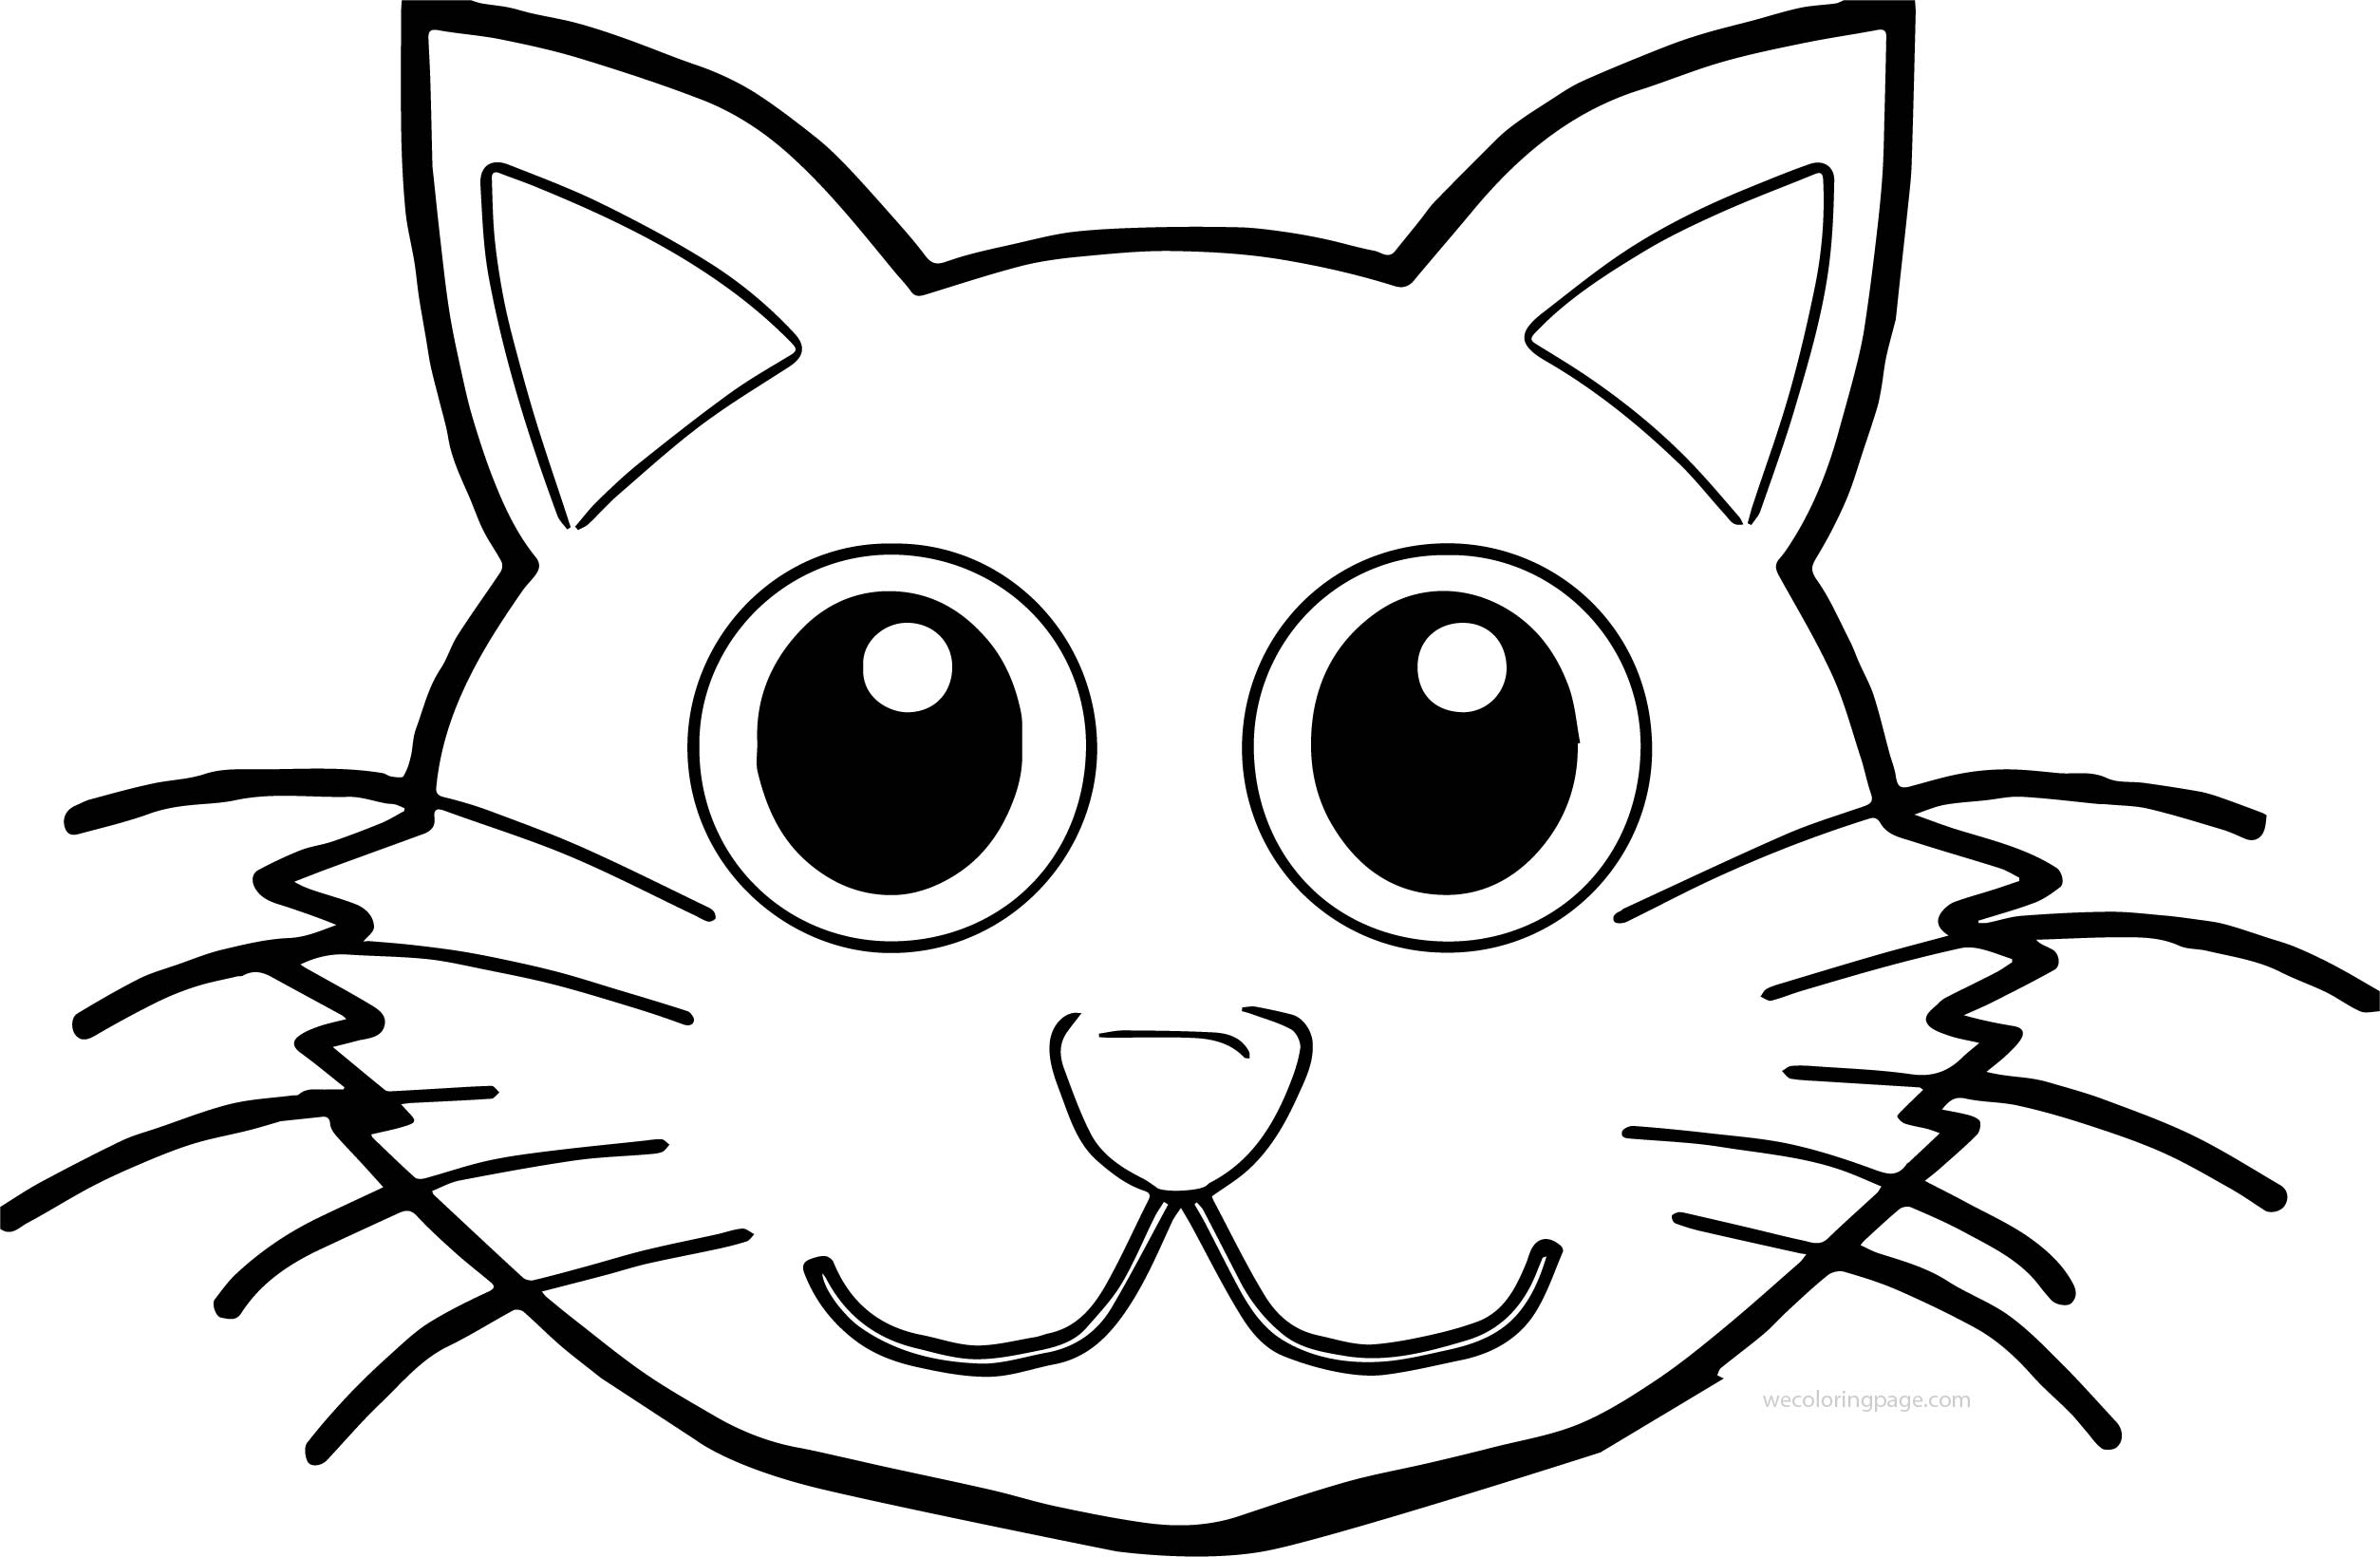 printable cat face coloring pages - photo#6